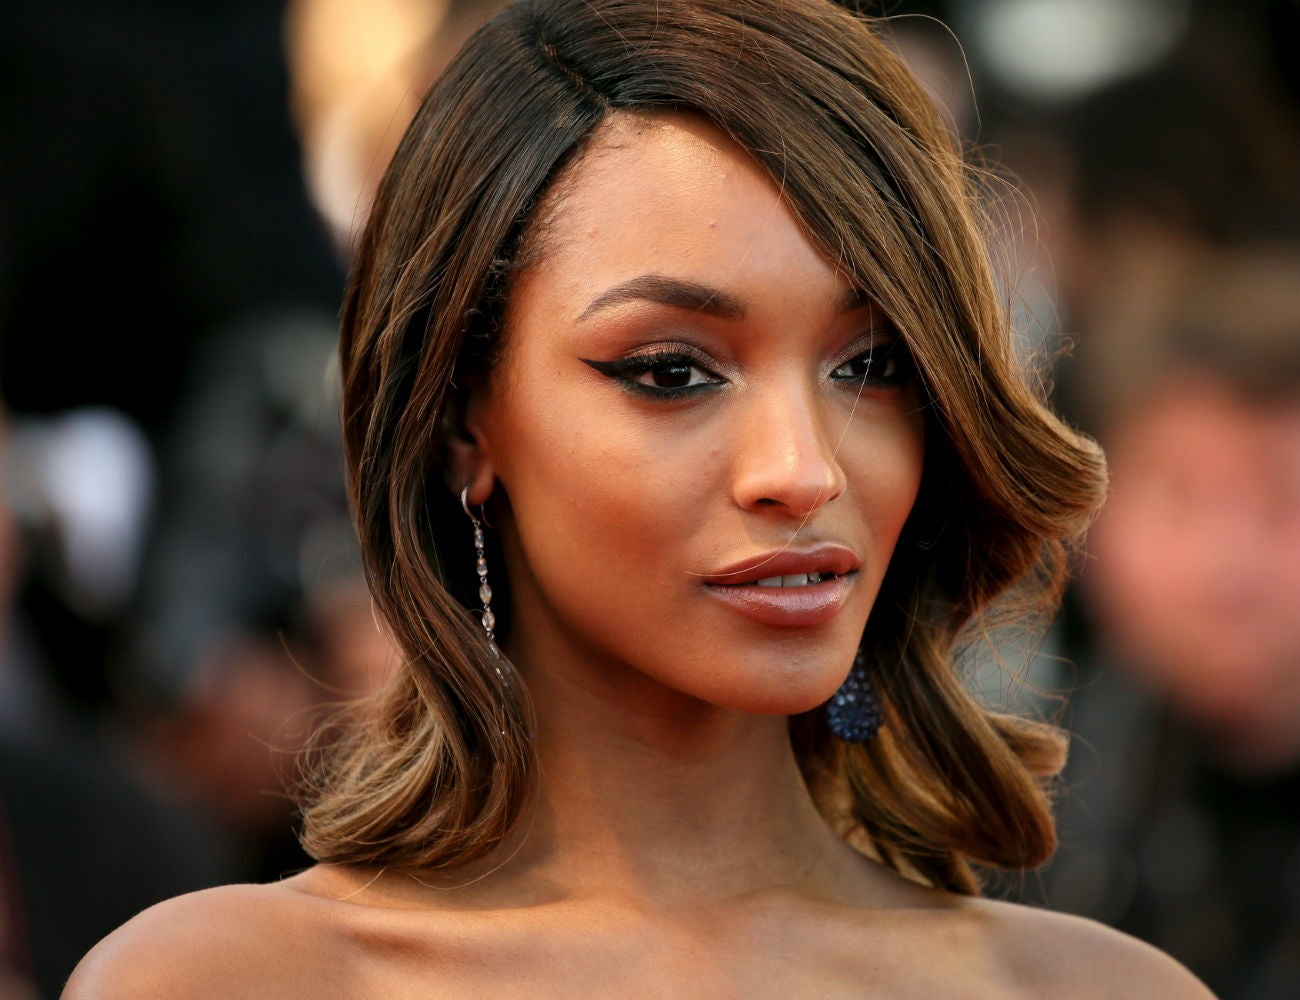 Jourdan Dunn - Jourdan Dunn Net Worth, Pics, Wallpapers, Career and Biography